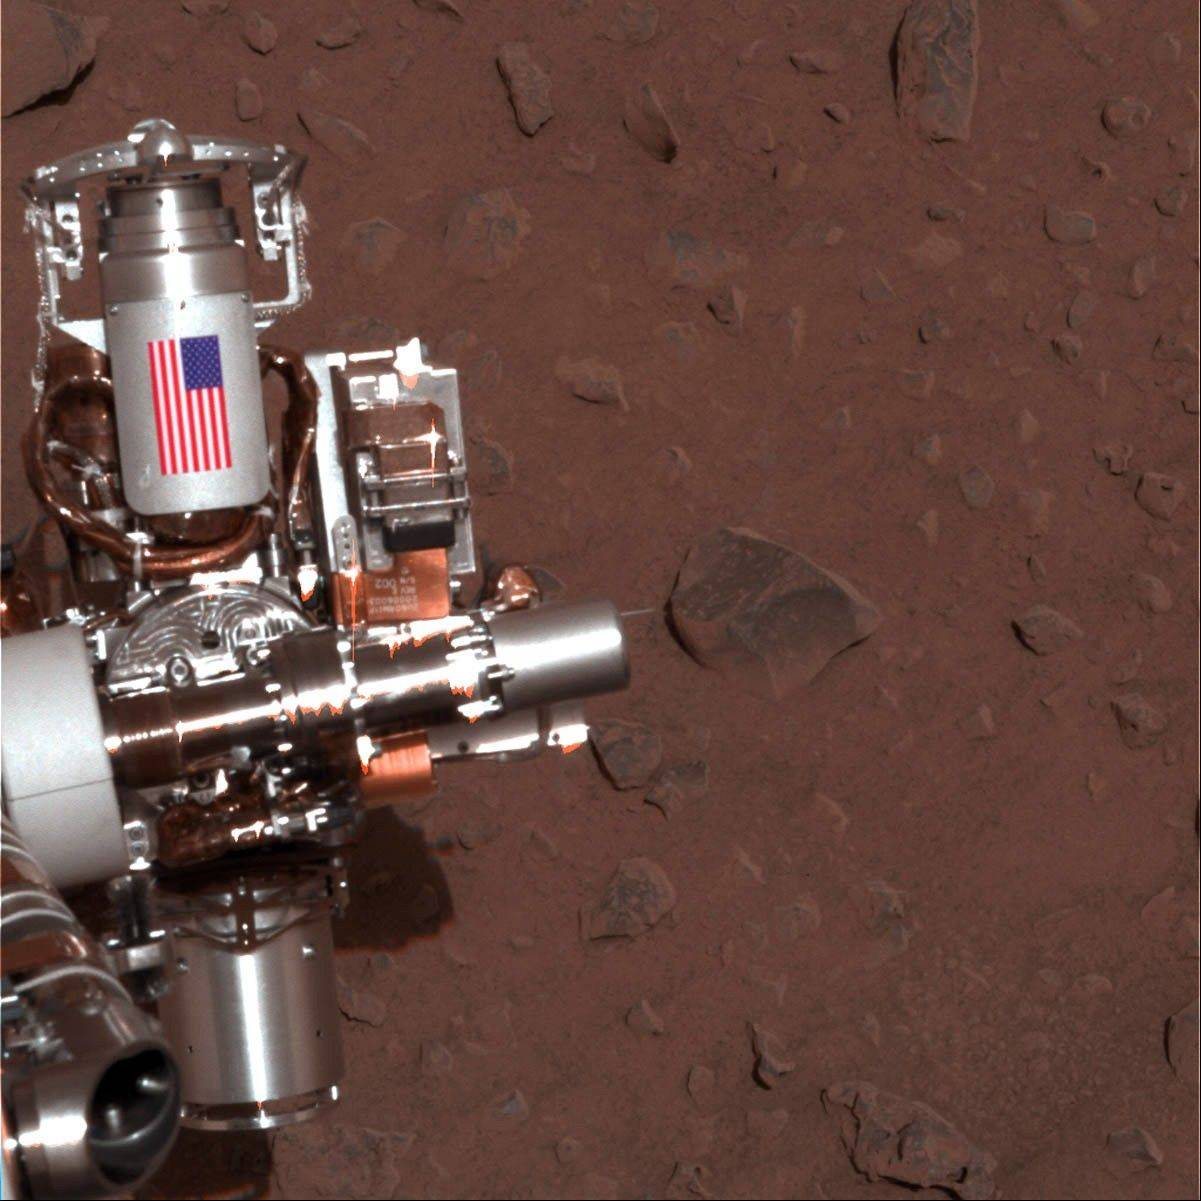 ASSOCIATED PRESSThis image provided by NASA shows the piece of metal with the American flag on it is made of aluminum recovered from the site of the World Trade Center towers in New York City on Mars Rover Spirit that serves as a cable guard for Spiritís rock abrasion tool as well as a memorial to the victims of the Sept. 11, 2001, terrorist attacks.